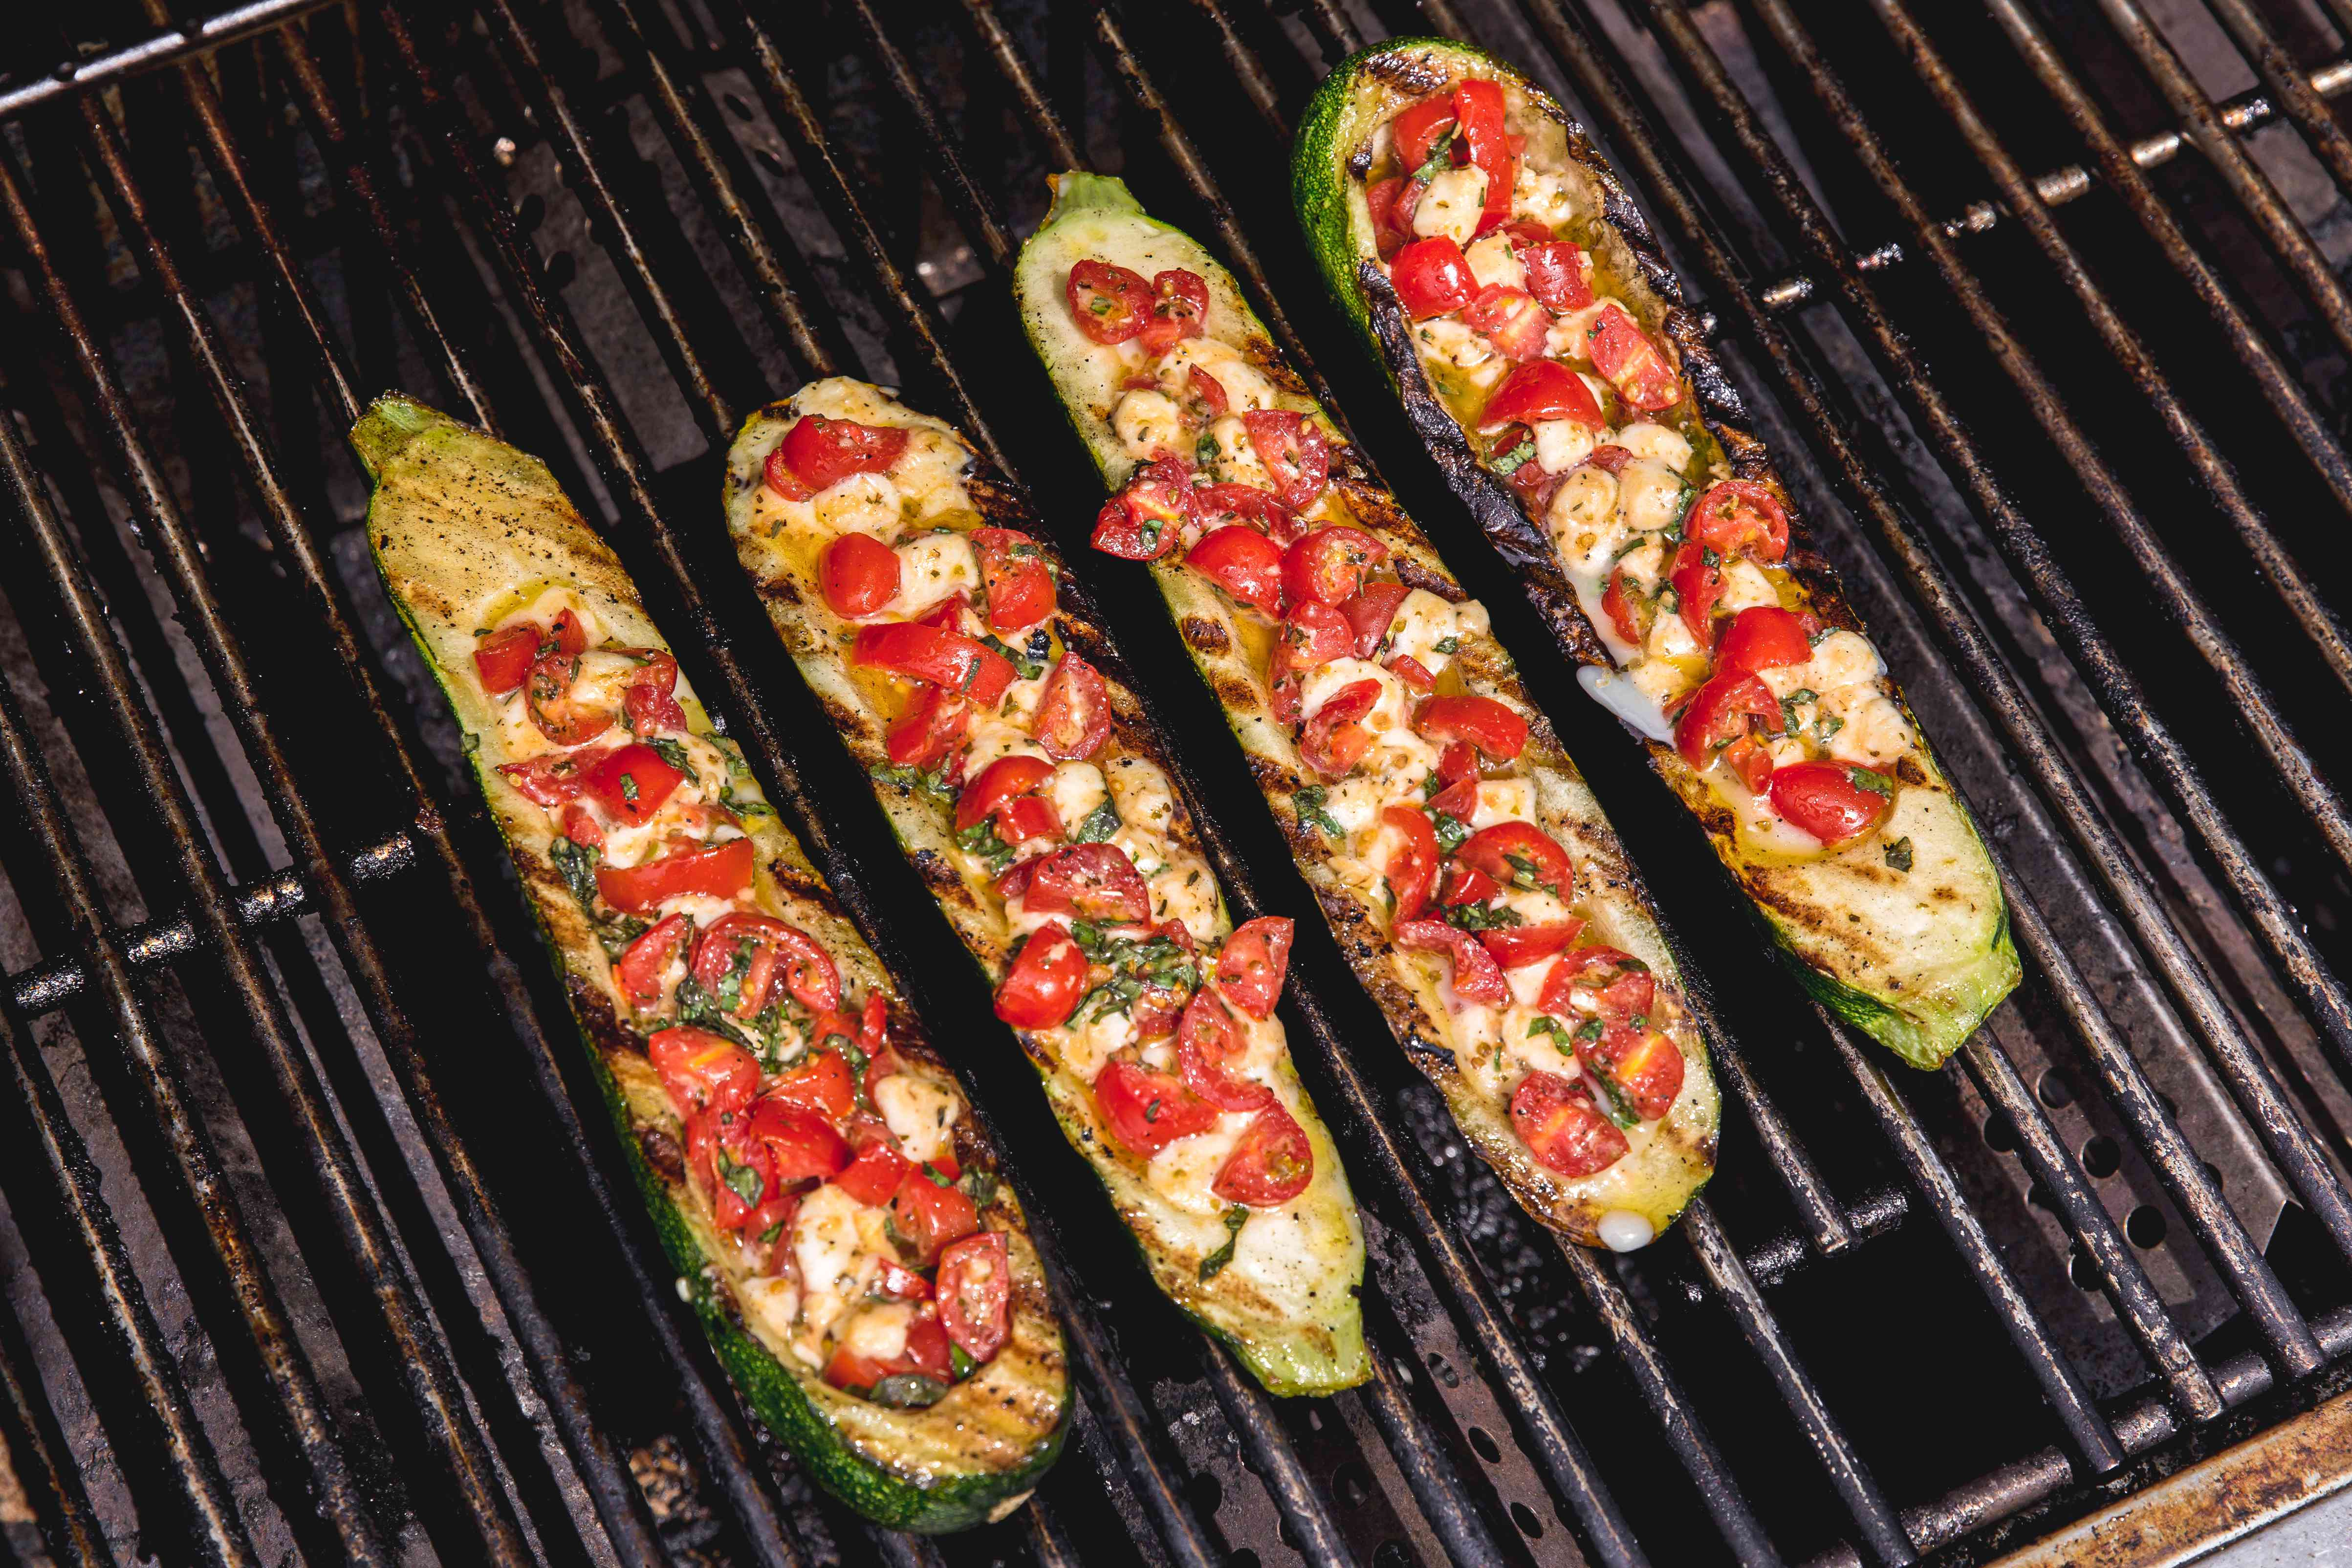 Grilling zucchini with tomatoes, mozzarella, and basil